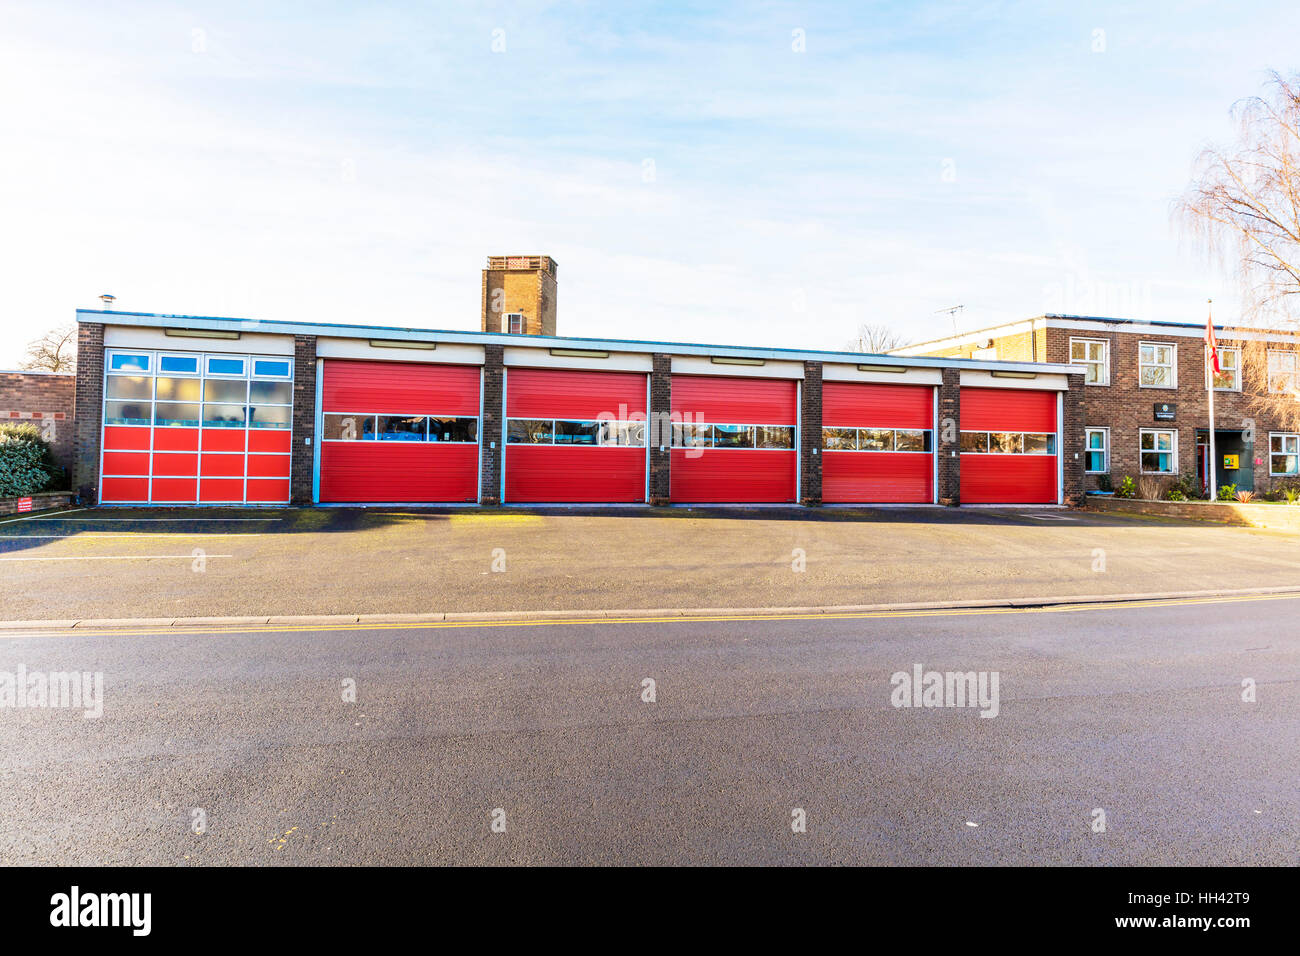 Humberside fire and rescue service fire station building exterior doors Scunthorpe Town, Lincolnshire UK England - Stock Image